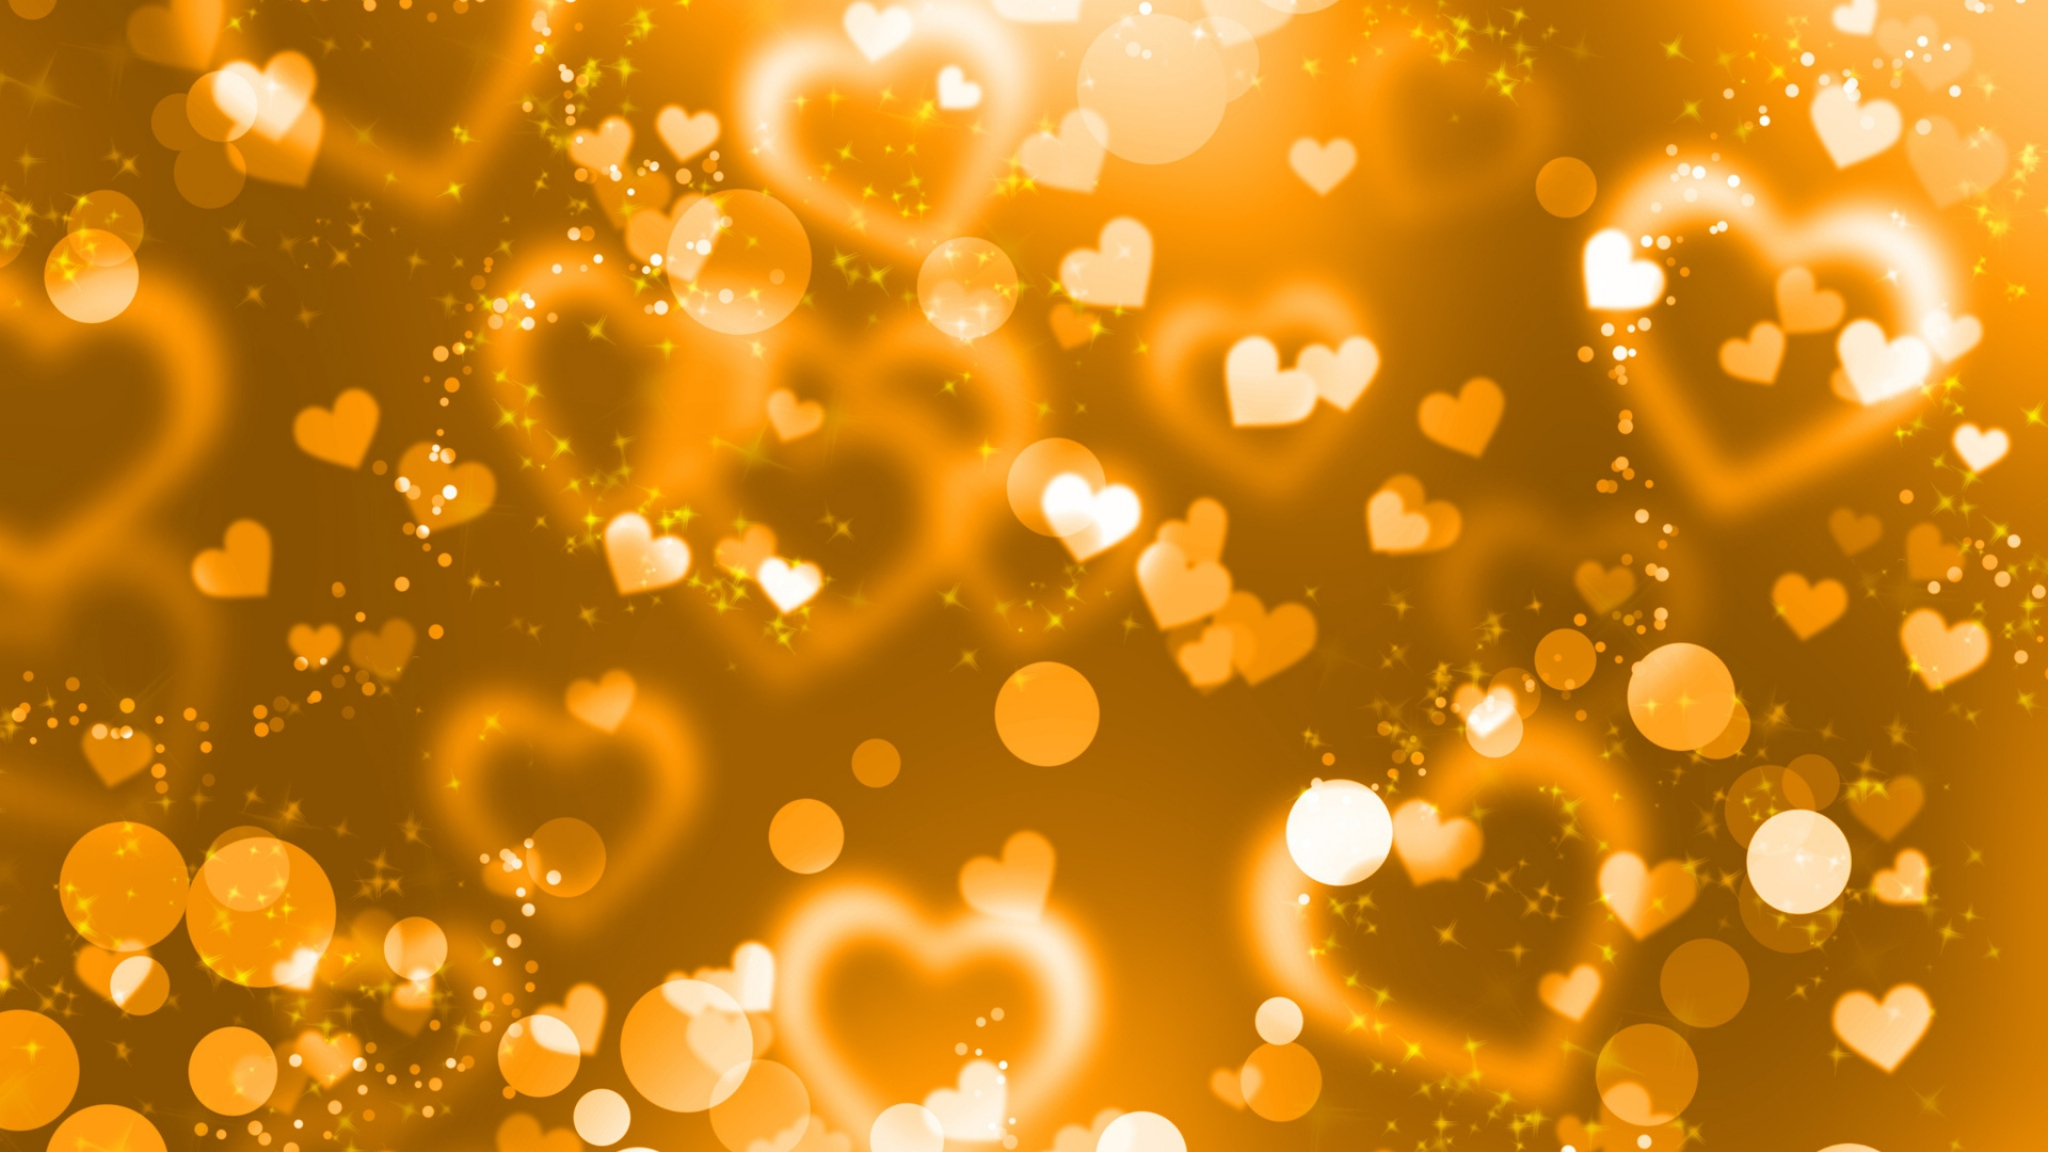 Hearts Glitter Background wallpaper Orange Hearts Glitter Background 2048x1152